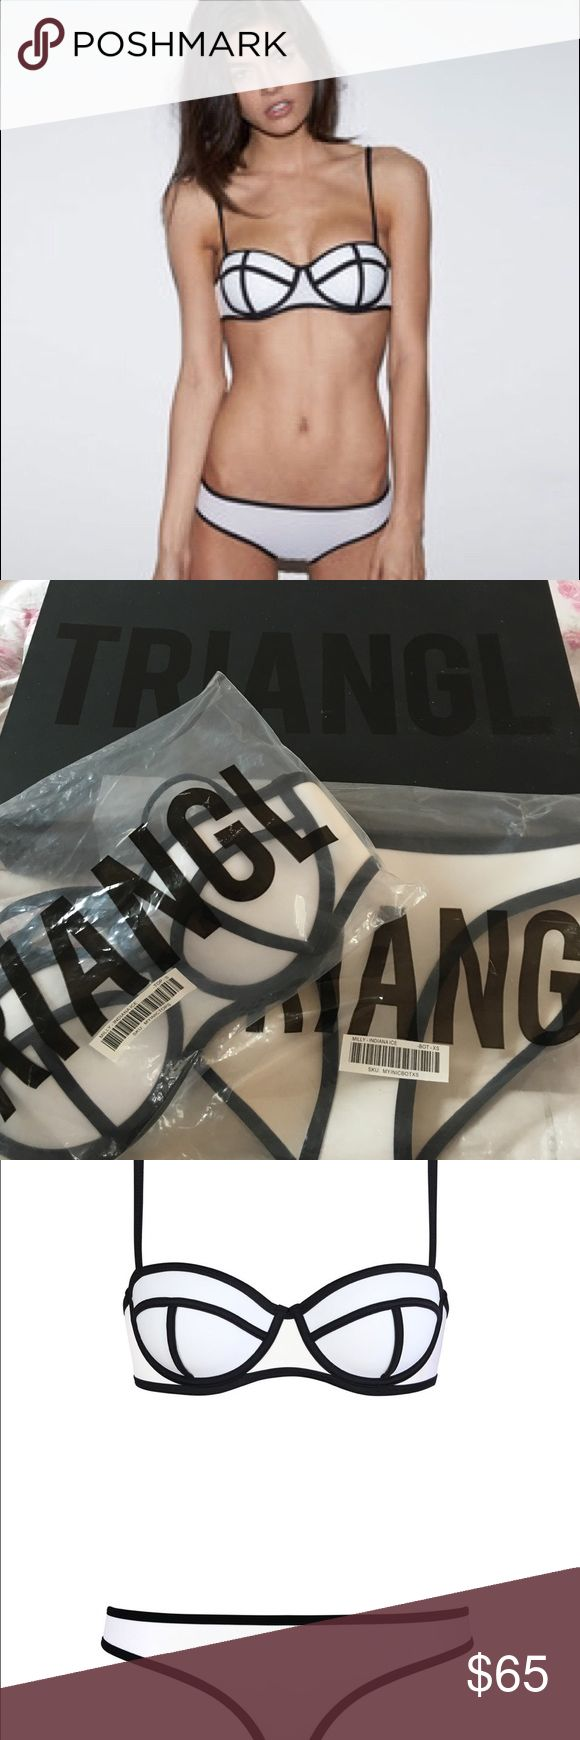 Original black and white triangl bikini Comes with box. Top is small. Bottom is extra small. triangl swimwear Swim Bikinis